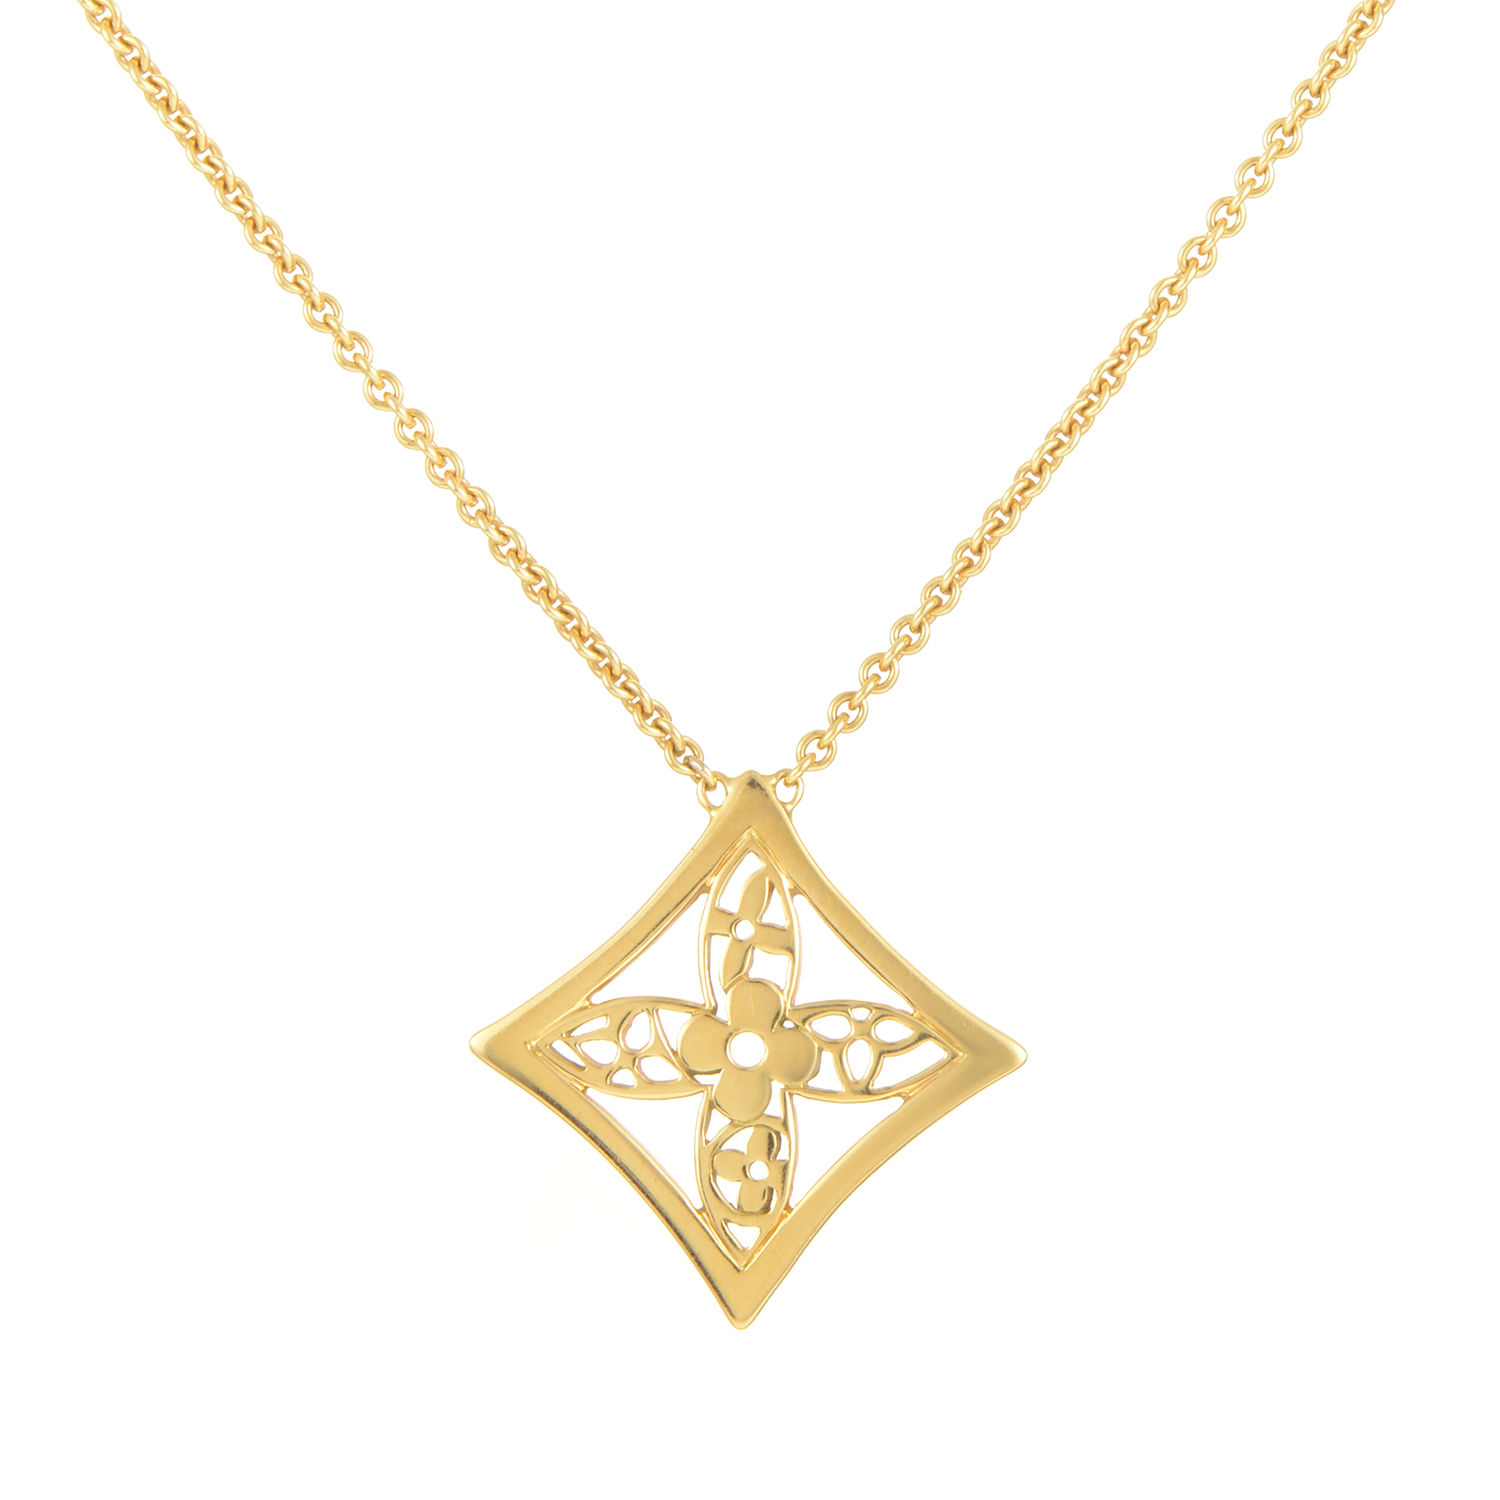 Louis Vuitton Idylle Blossom Women's 18K Yellow Gold Pendant Necklace